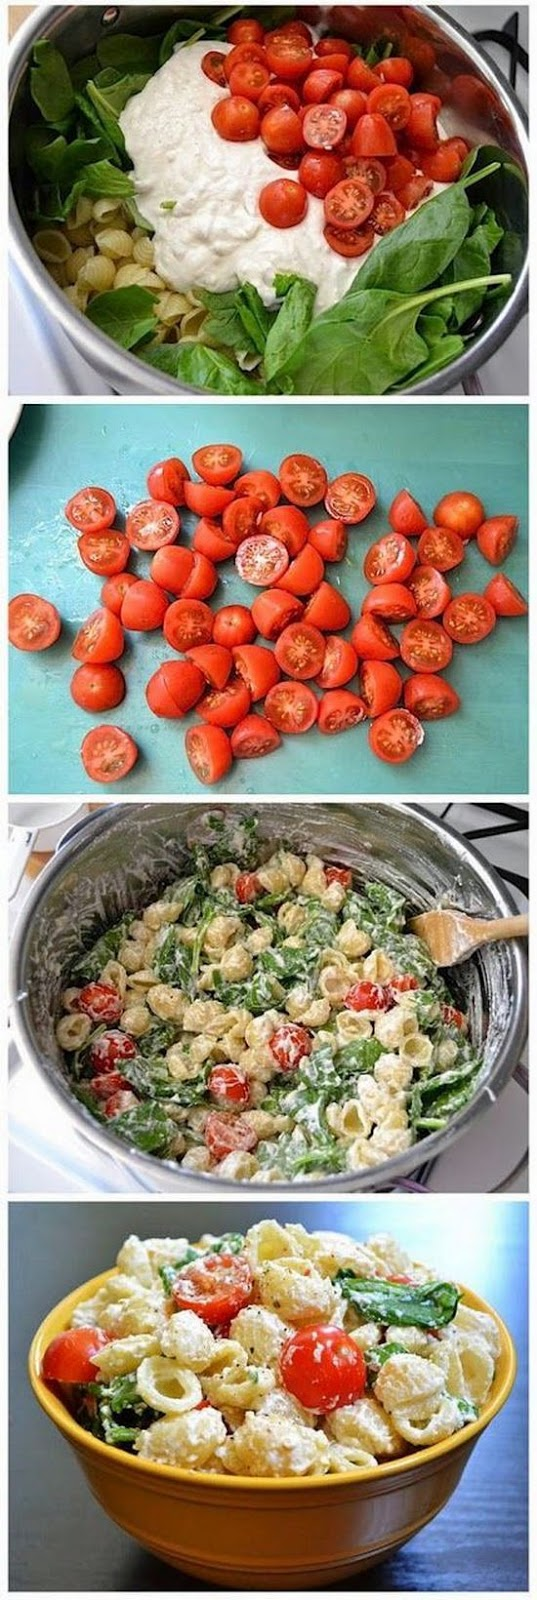 Roasted Garlic, Olive And Tomato Pasta Salad Recipe — Dishmaps